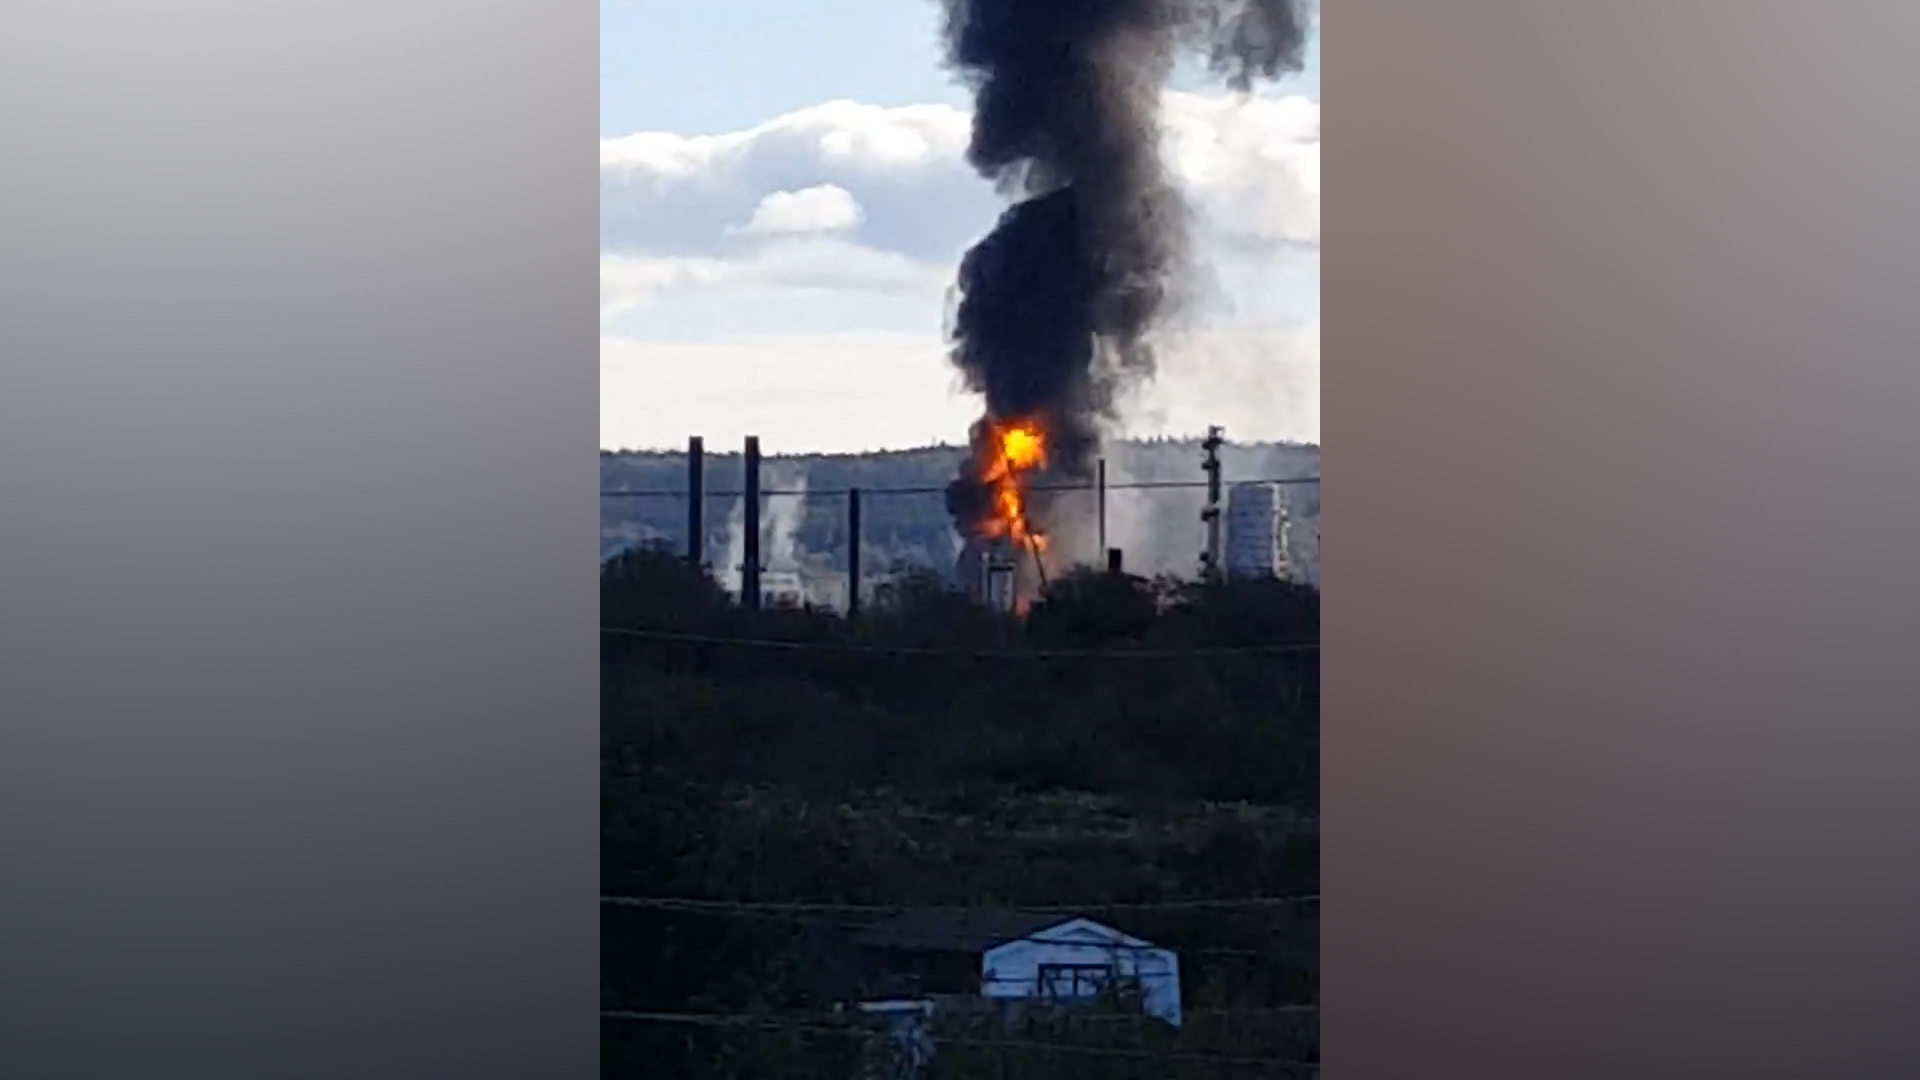 Irving Oil Refinery Explosion: Full Story & Must-See Details